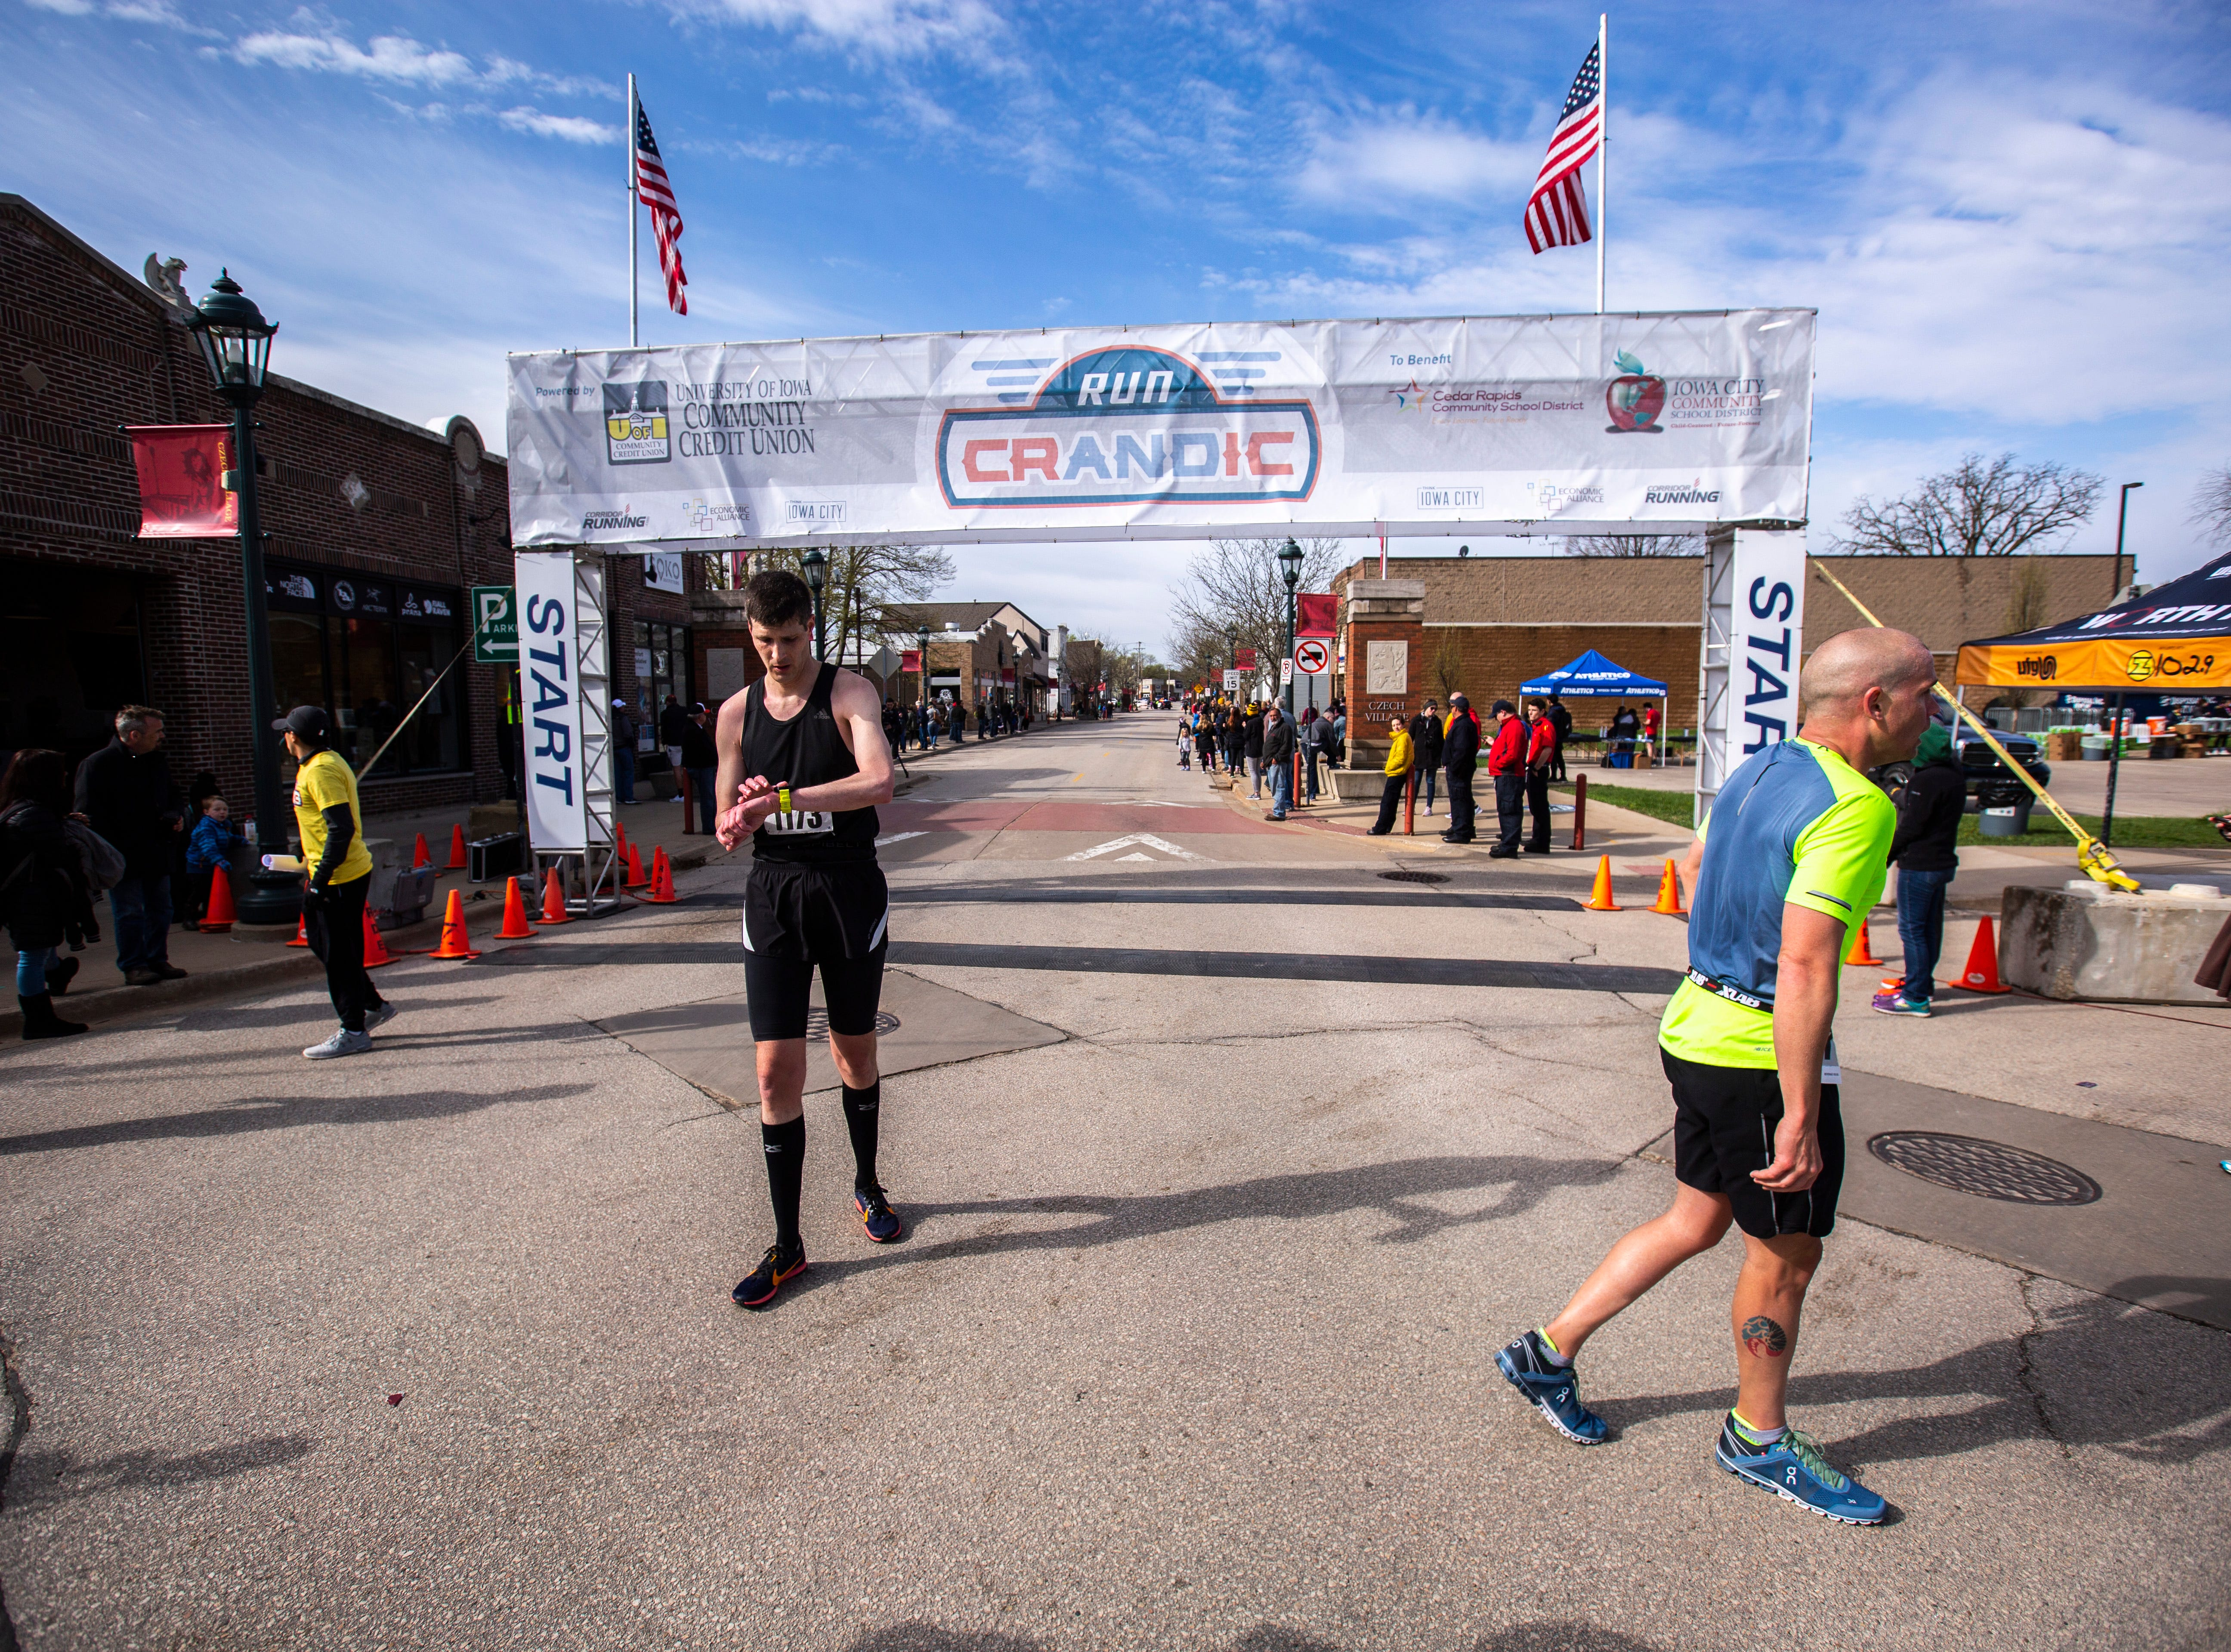 Sean McVeigh, left, checks his time after finishing with half marathon runners past the finish line during the second annual Run CRANDIC marathon, Sunday, April 28, 2019, along 16th Avenue SE in Cedar Rapids, Iowa.